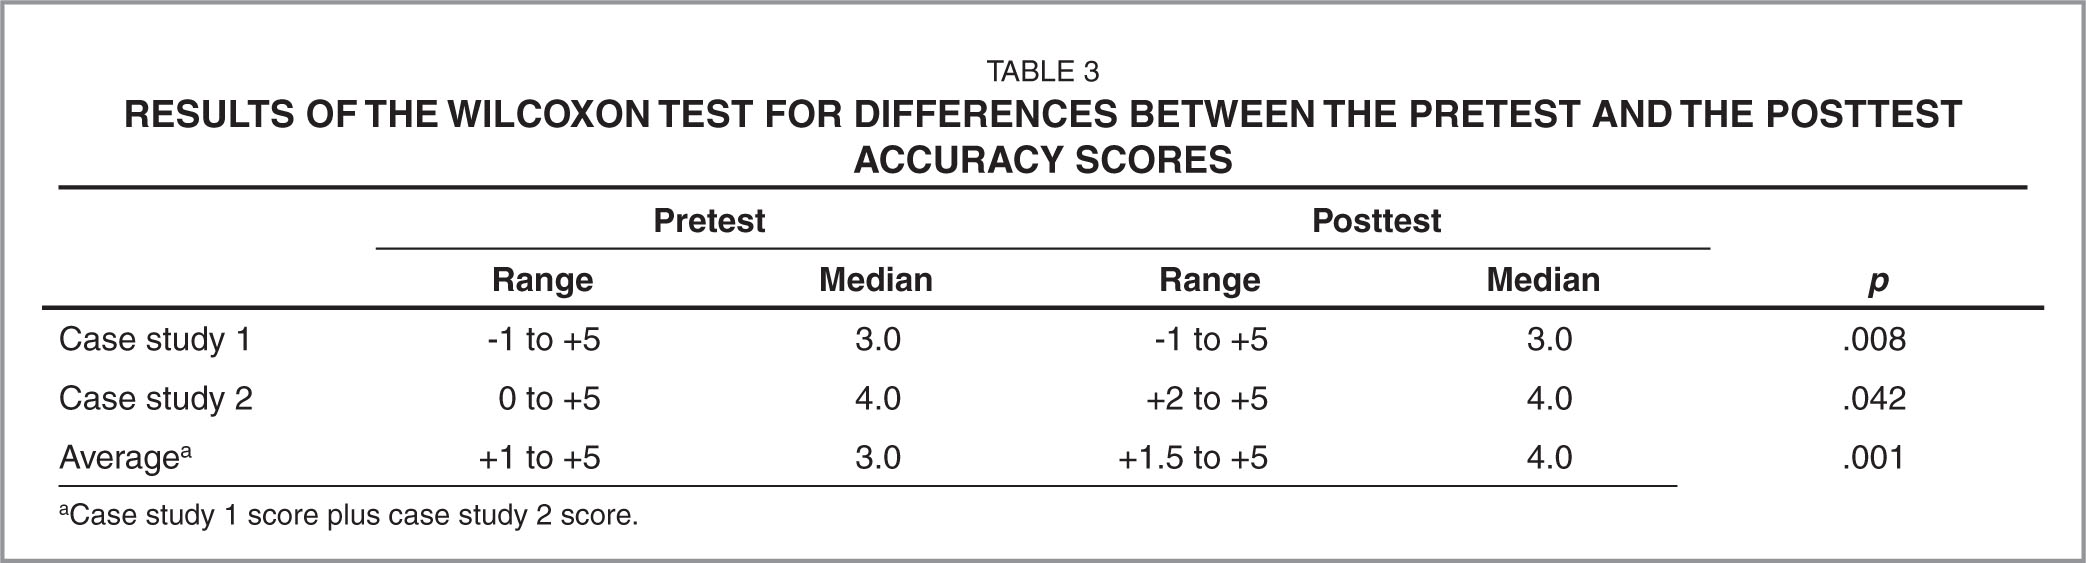 Results of the Wilcoxon Test for Differences Between the Pretest and the Posttest Accuracy Scores